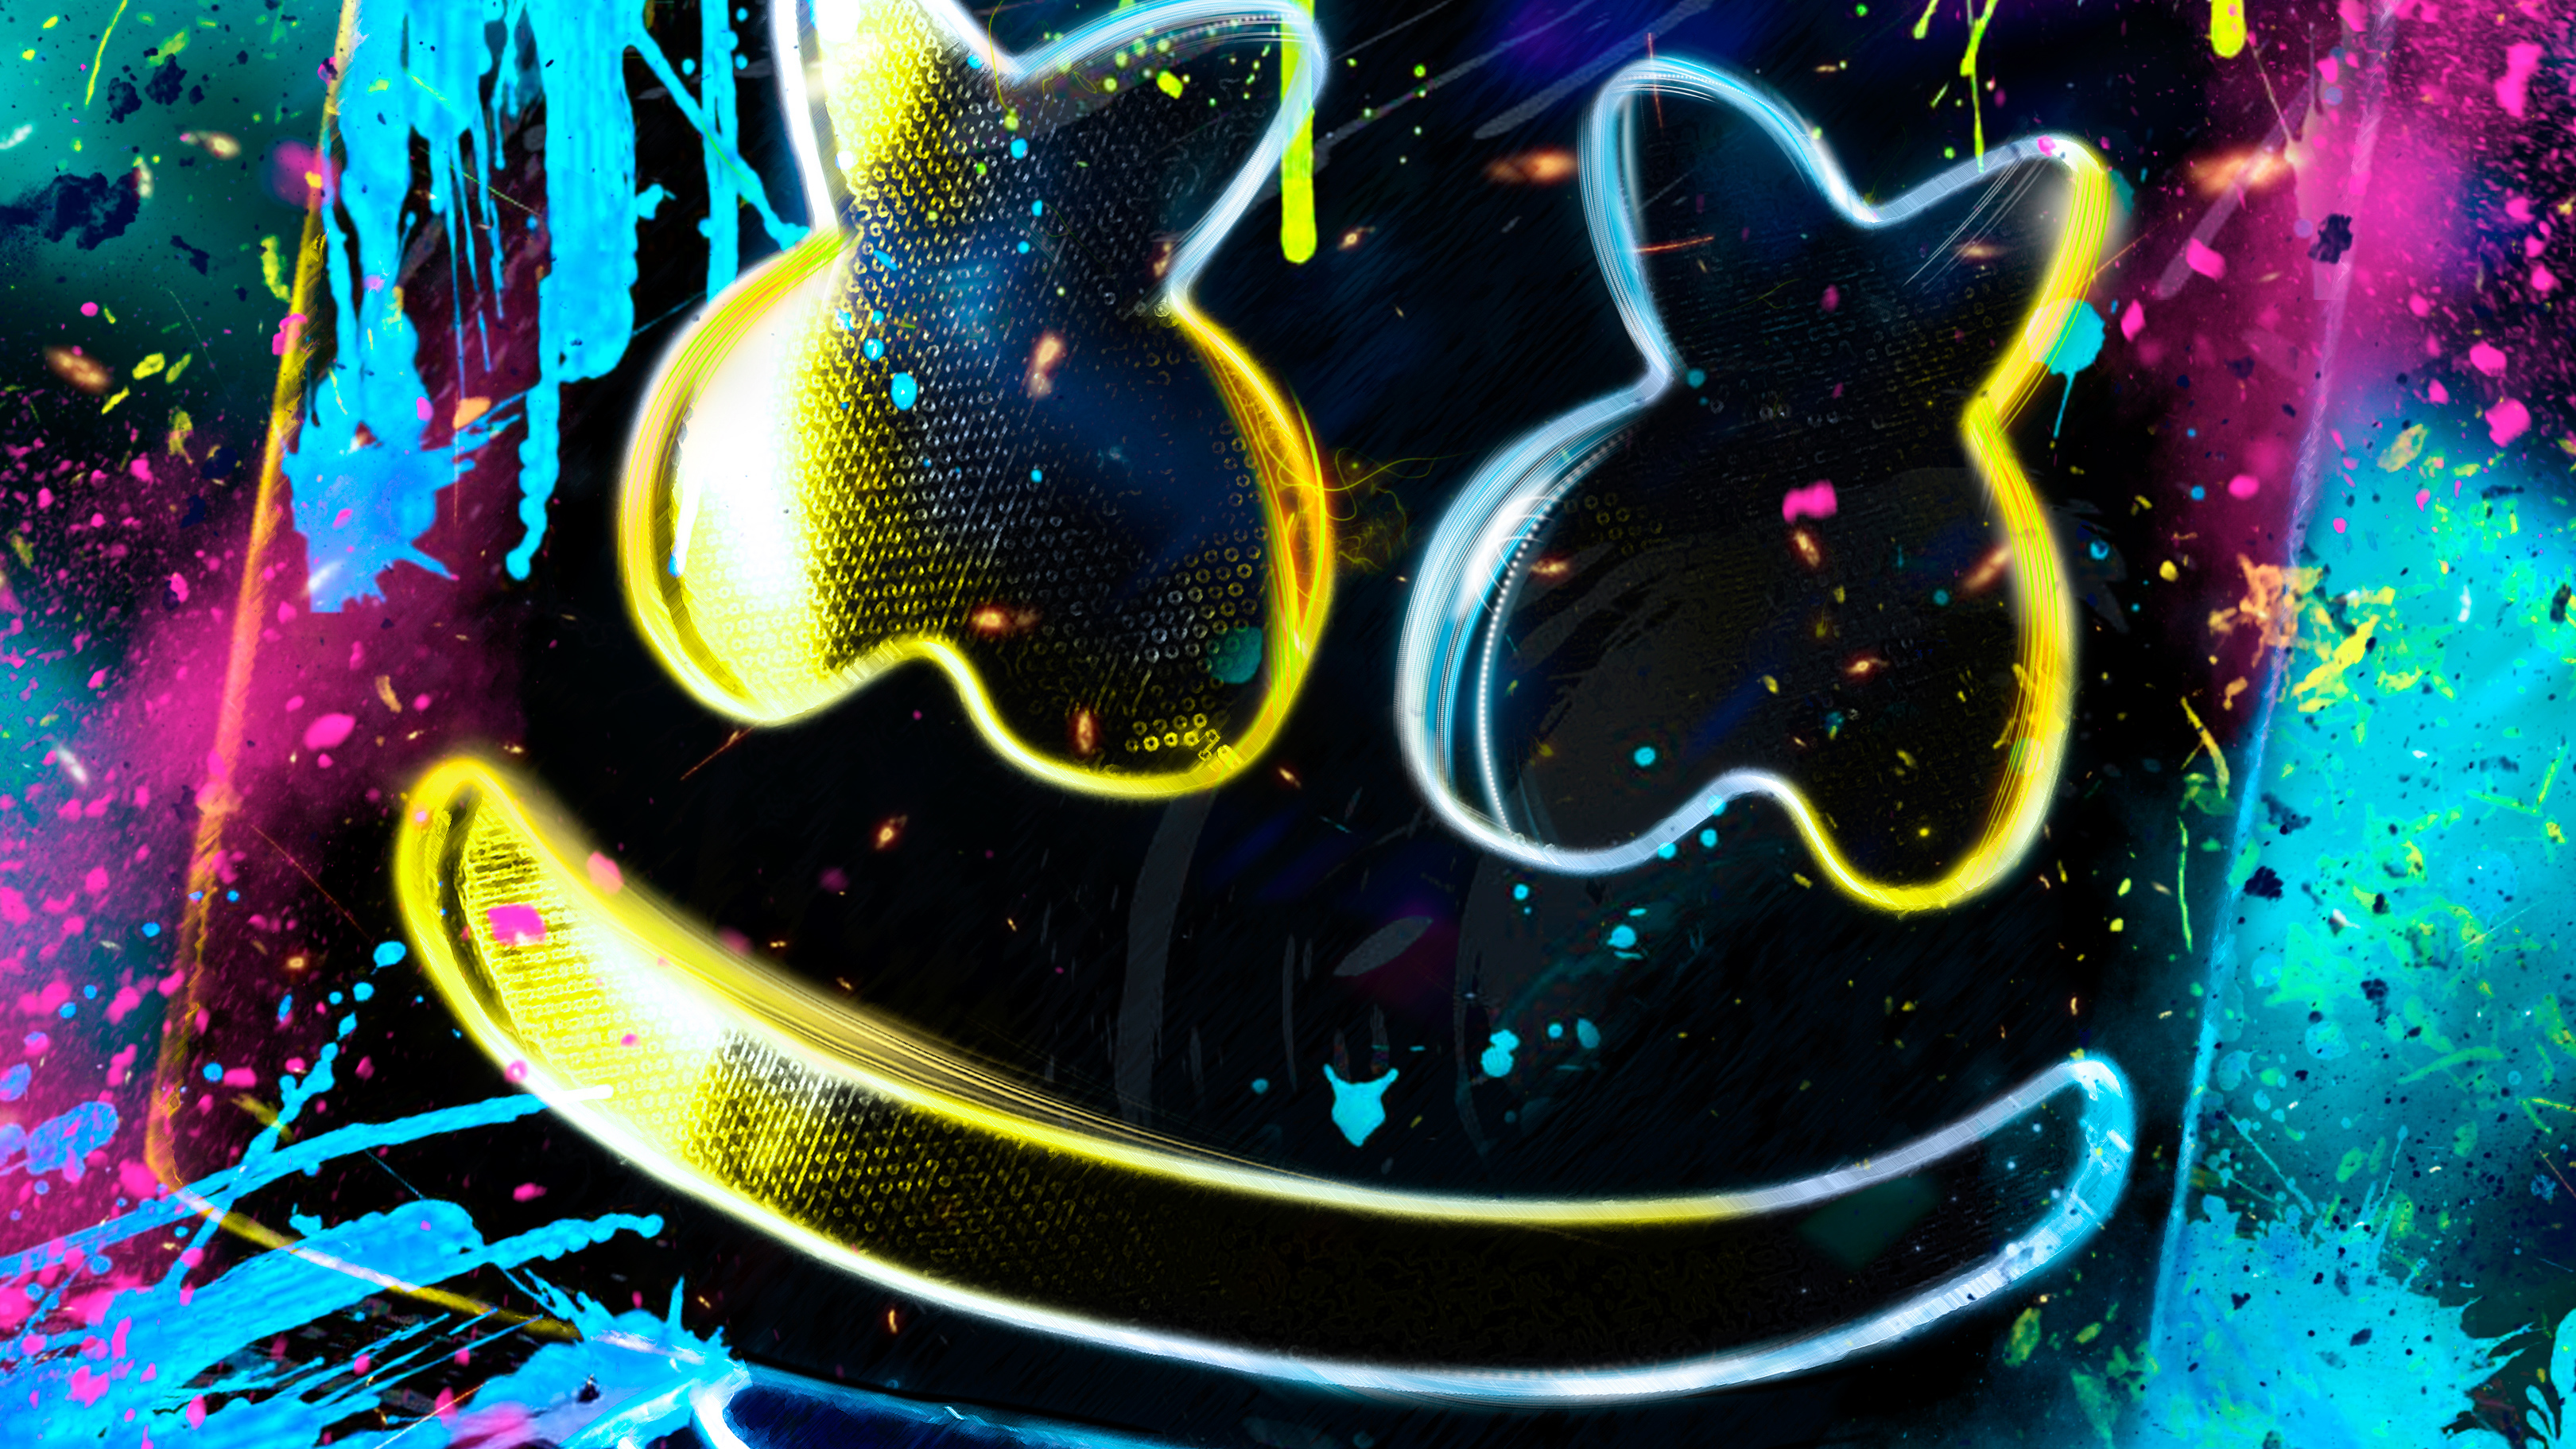 Neon Marshmello Hd Music 4k Wallpapers Images